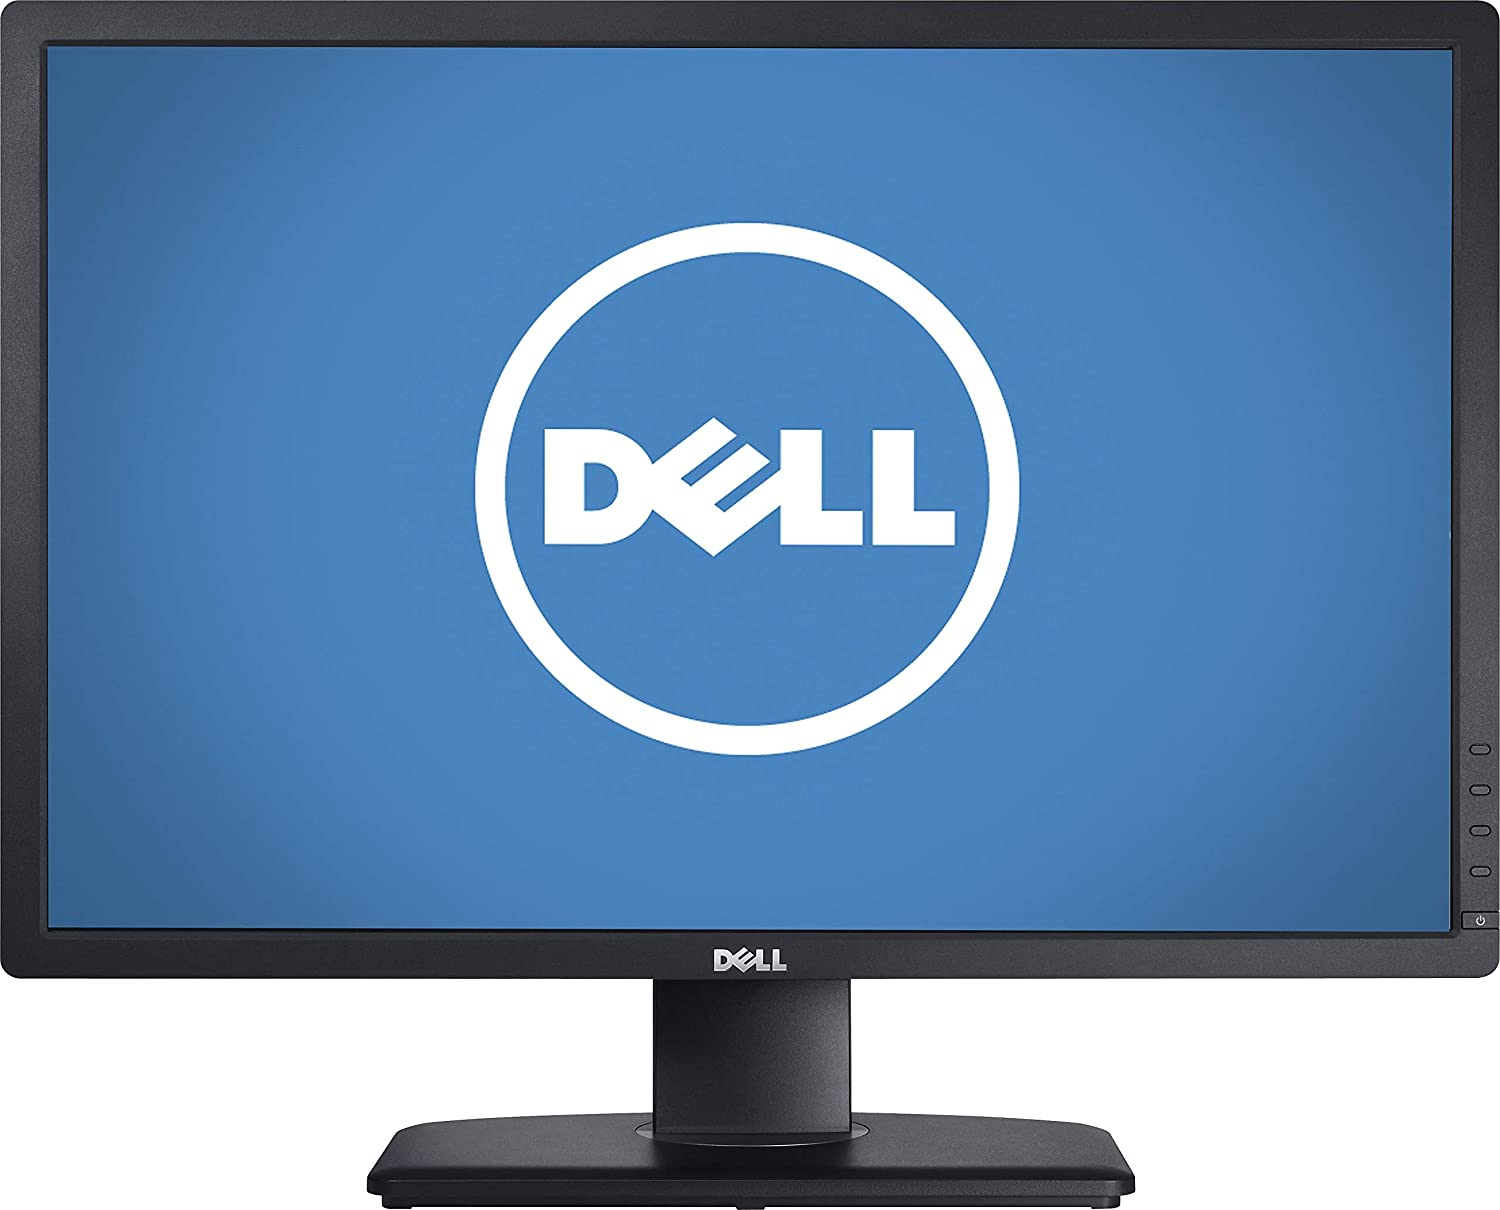 "Dell UltraSharp U2412M Monitor, Black IPS Panel, 24"" 8ms Pivot, Swivel & Height Adjustable LED Backlight Widescreen LCD, DisplayPort, VGA, DVI-D, 4 USB 2.0, 1920 x 1200 @ 60 Hz resolution"